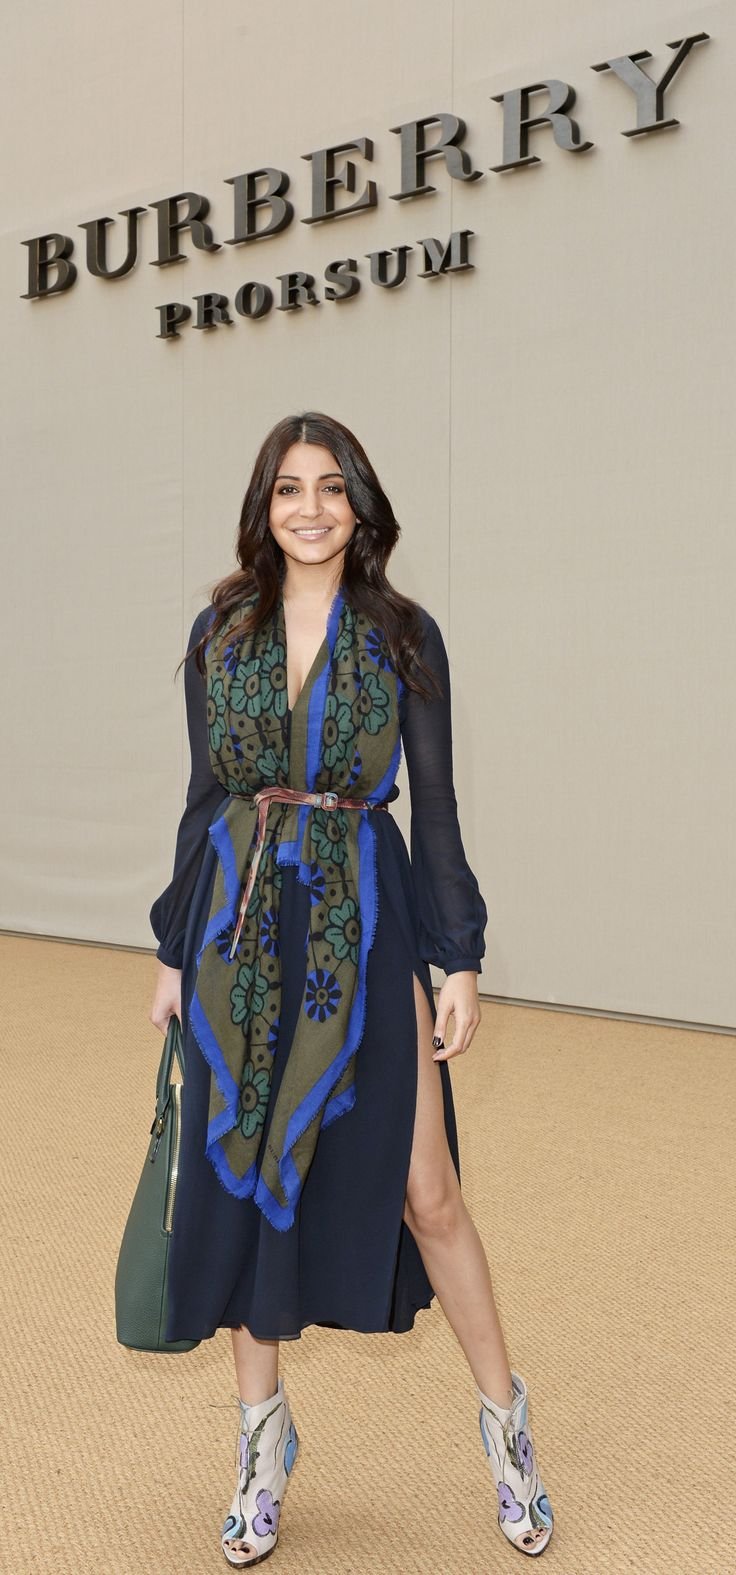 Indian actress Anushka Sharma wearing a Burberry Prorsum Scarf and Bloomsbury Bag at the S/S15 Runway Show in London